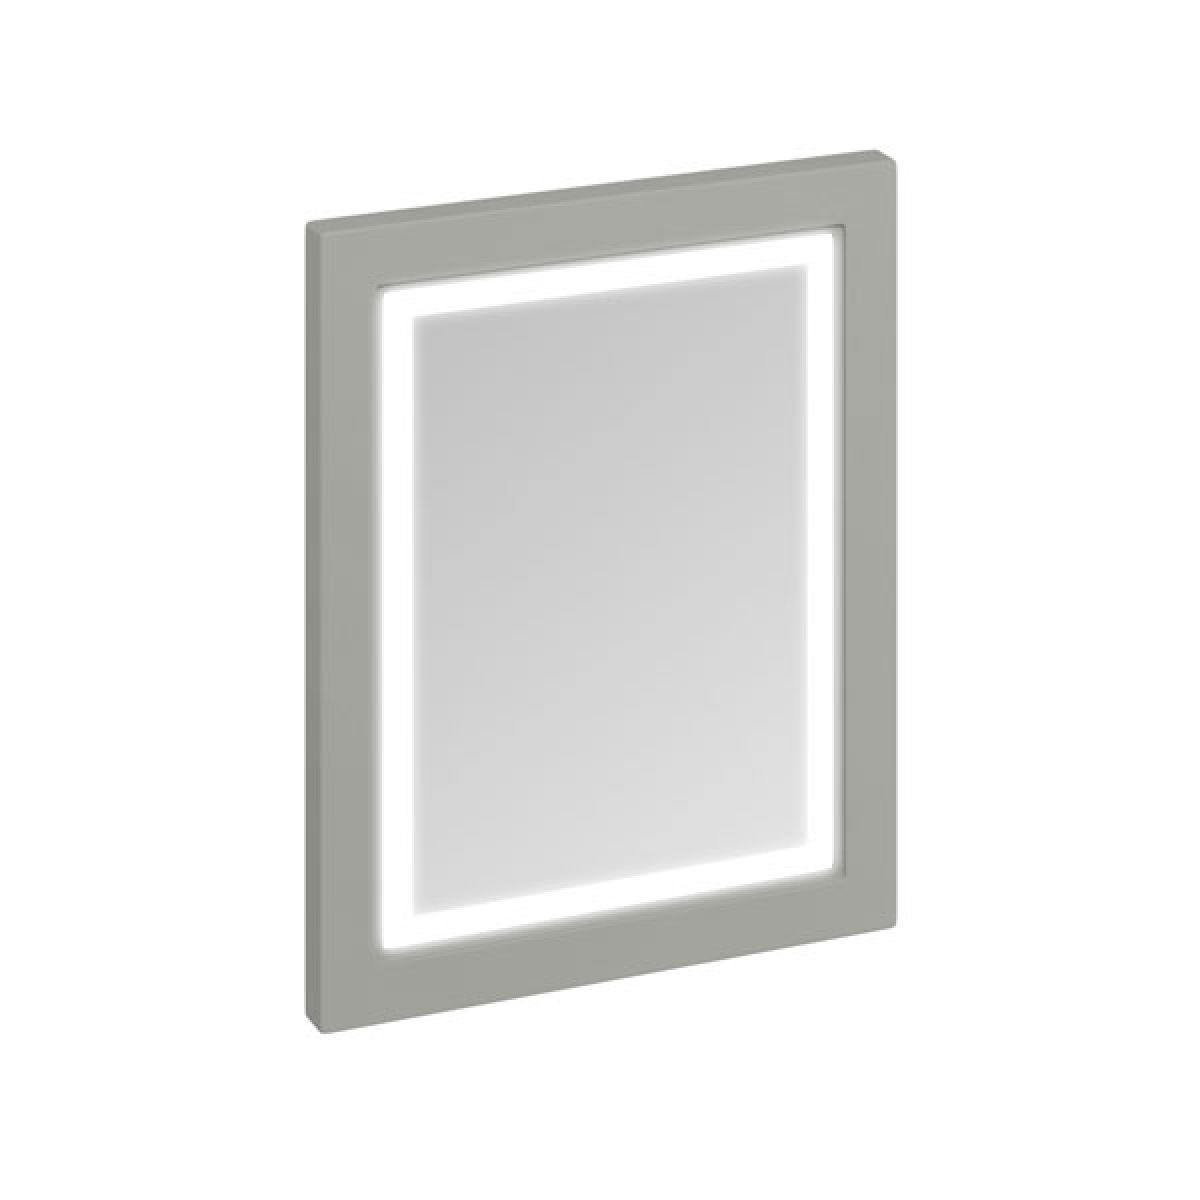 Burlington Dark Olive LED Bathroom Mirror 600mm